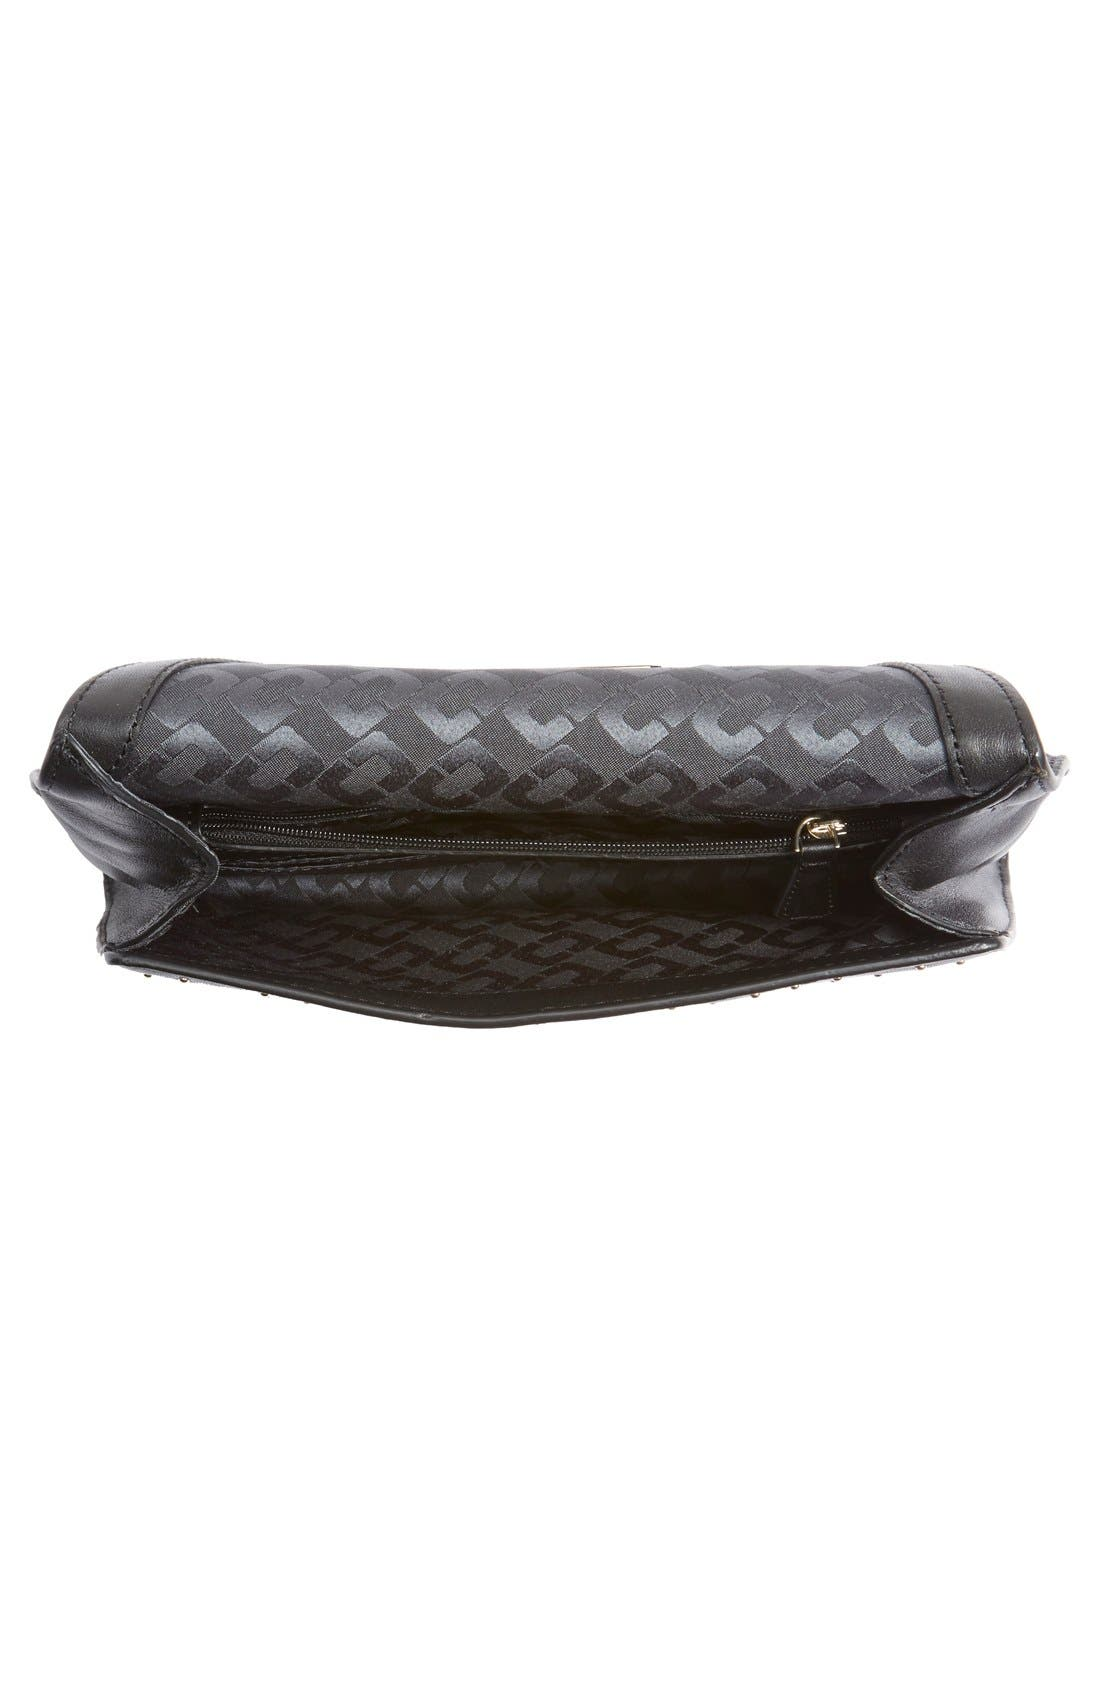 Alternate Image 4  - Diane von Furstenberg '440 Glory Uptown' Studded Leather Clutch